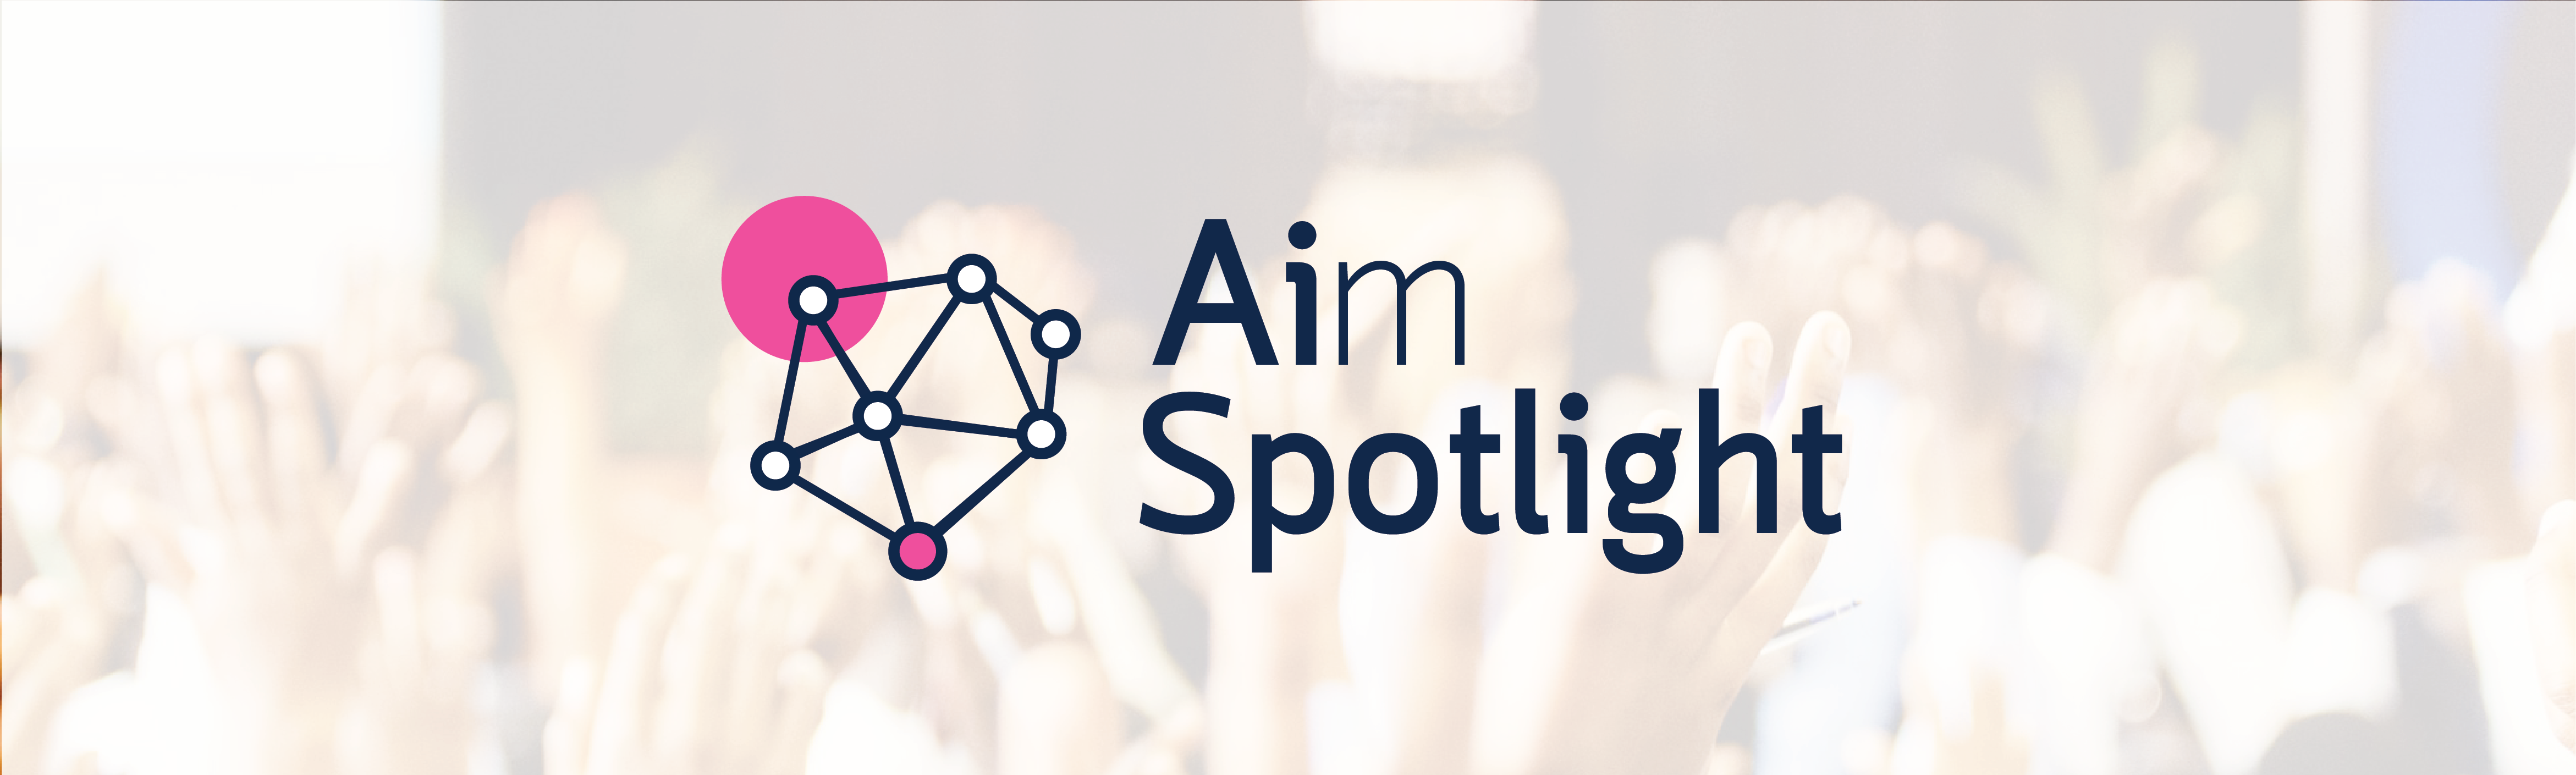 AIM Spotlight logo over background of people